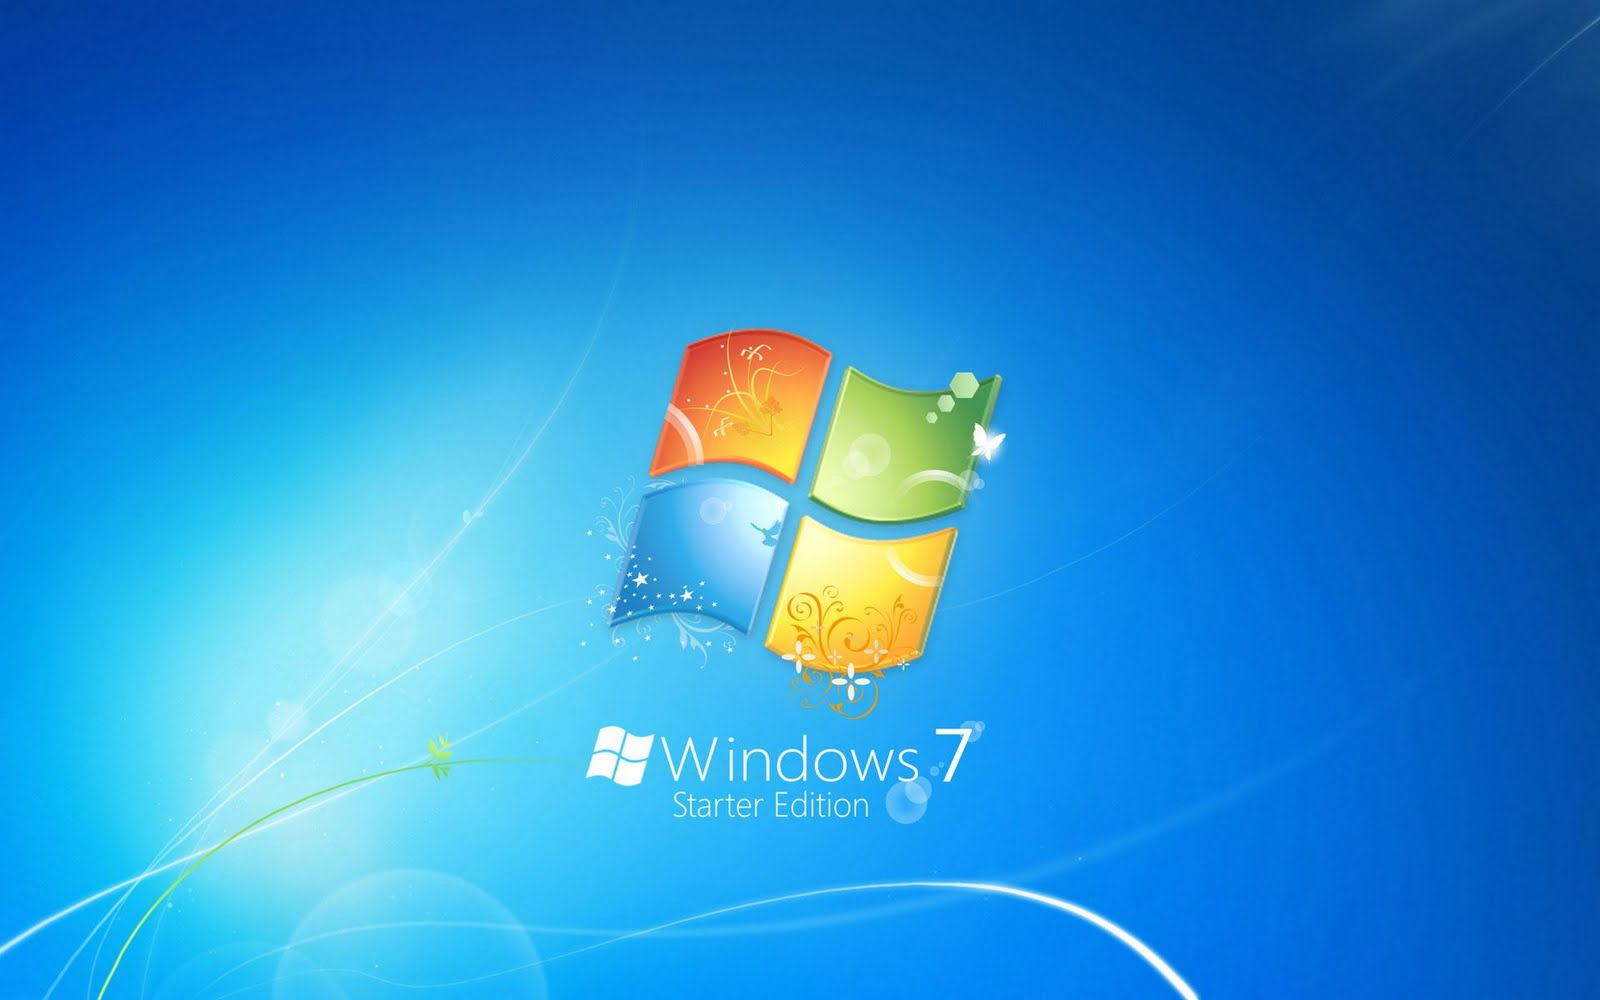 How to Change the Desktop Wallpaper in Windows 7 Starter  - windows 7 starter edition wallpapers